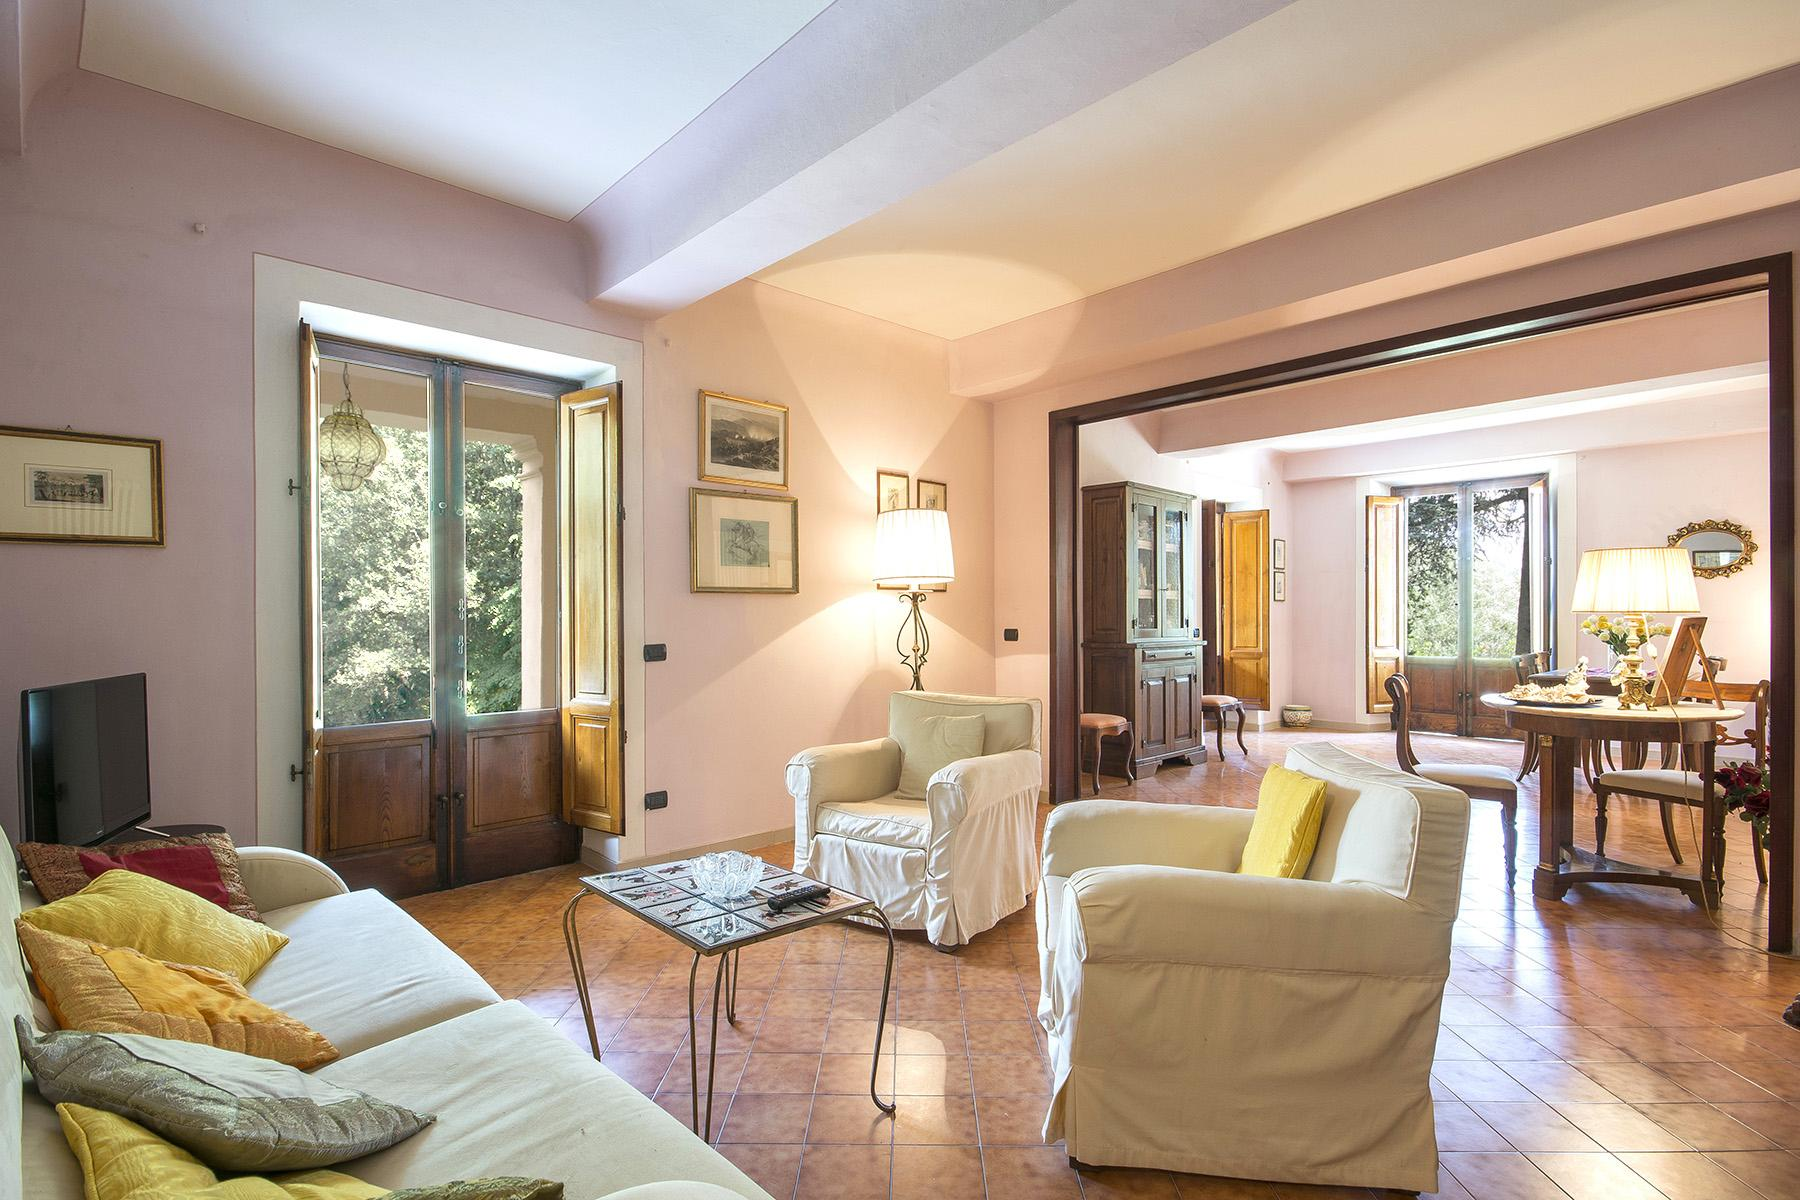 Beautiful XIX Century period villa with park near Lucca - 5